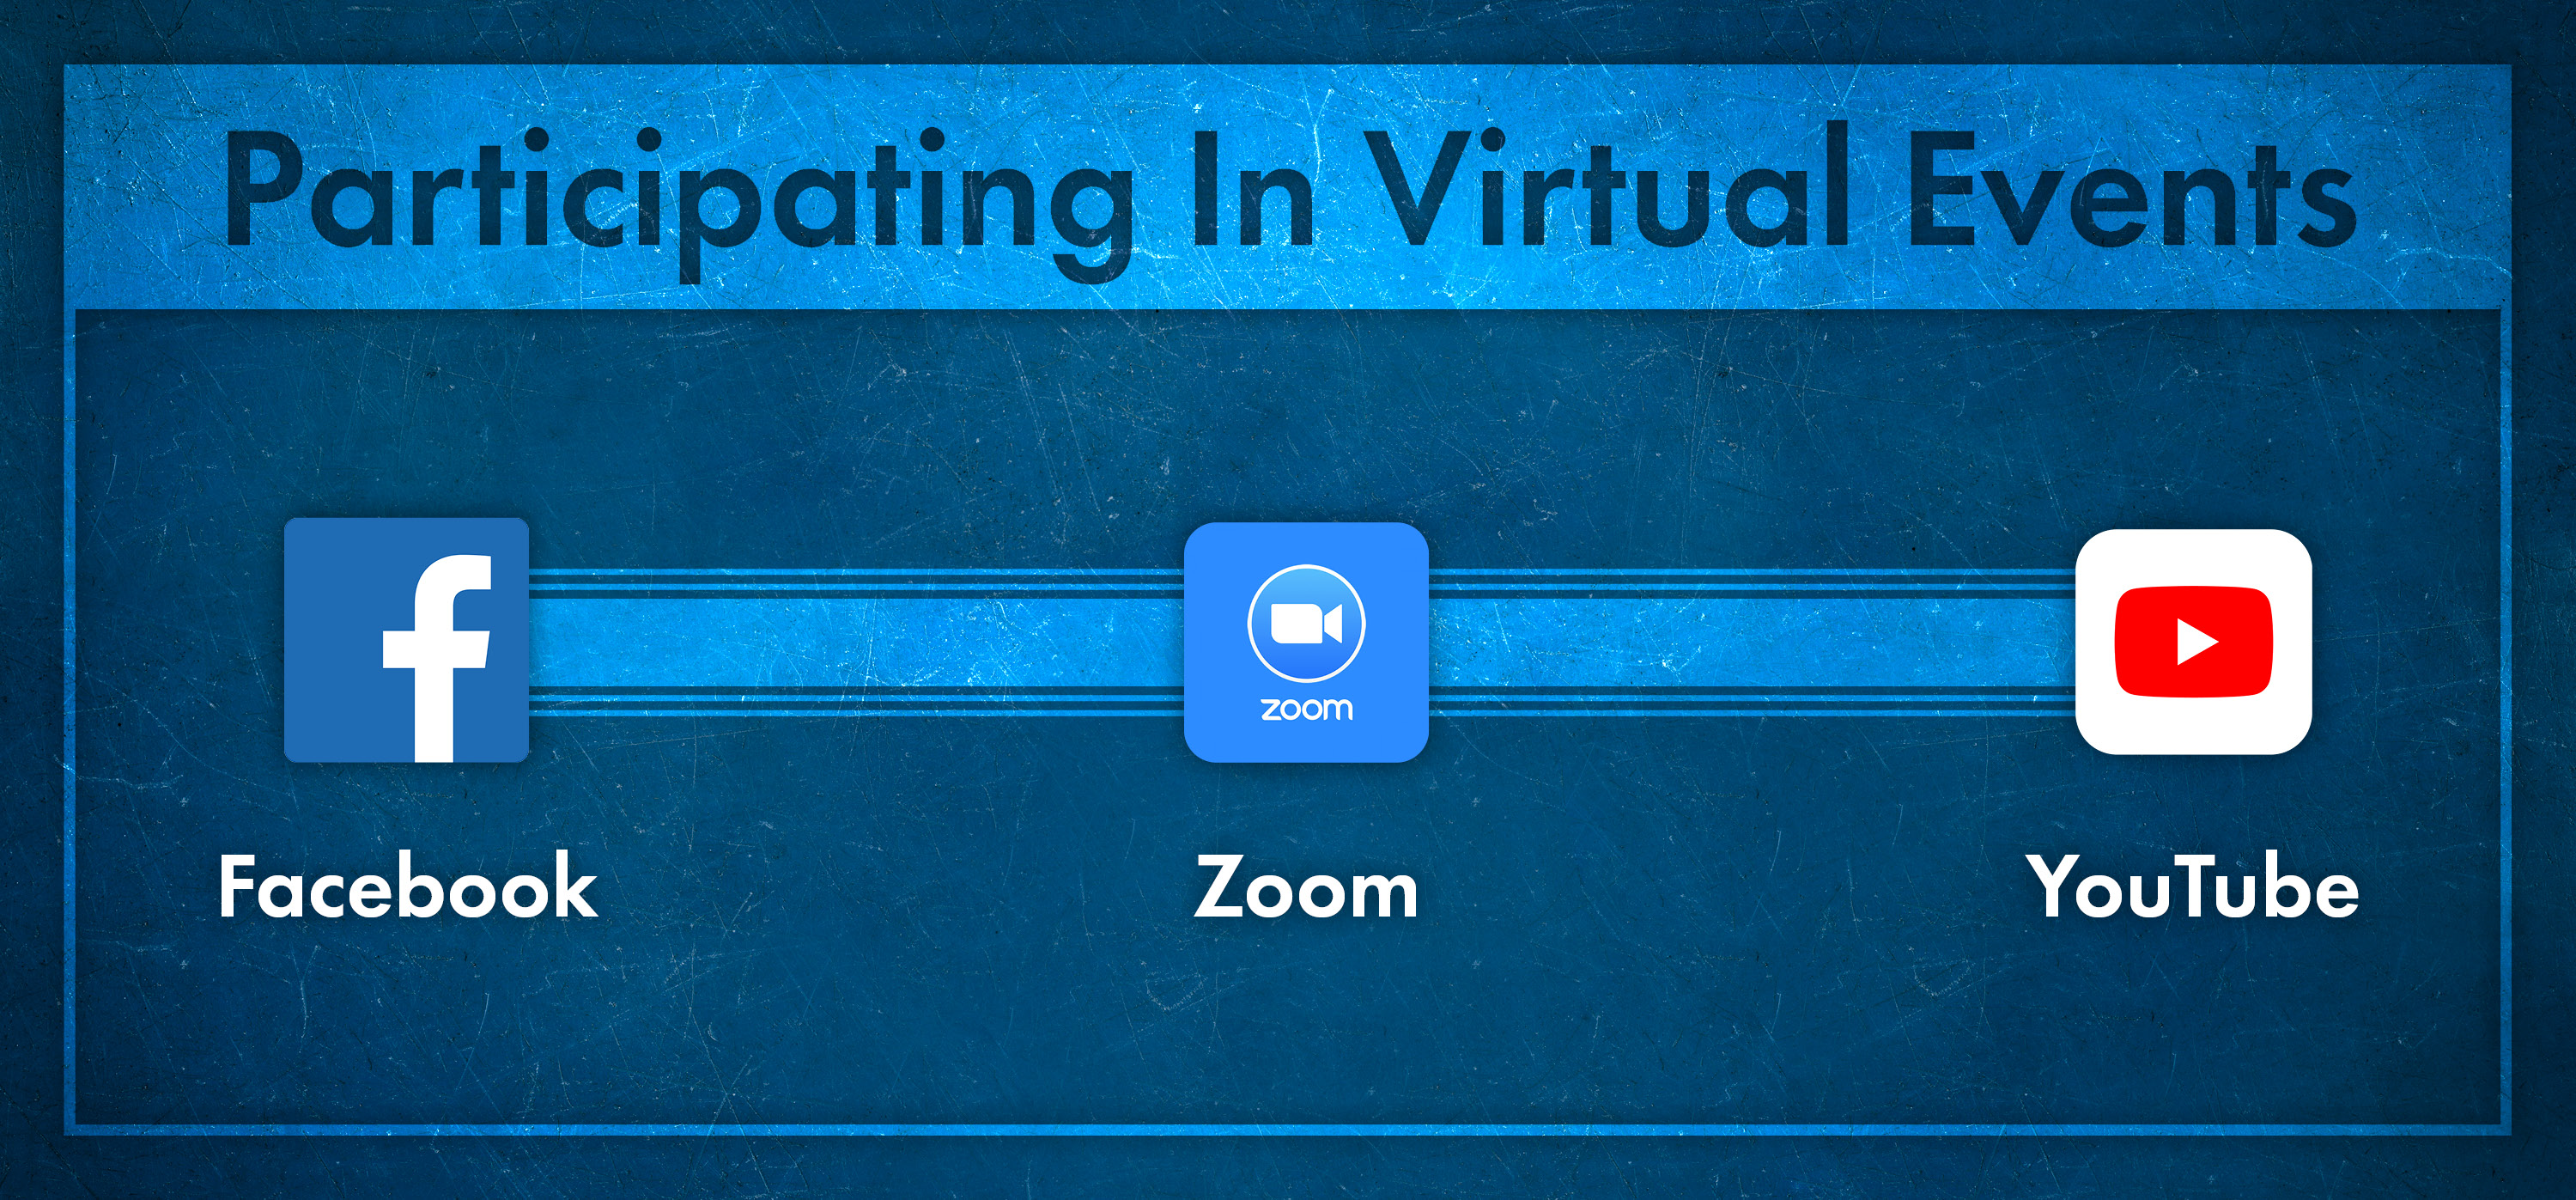 Participating in Virtual Events